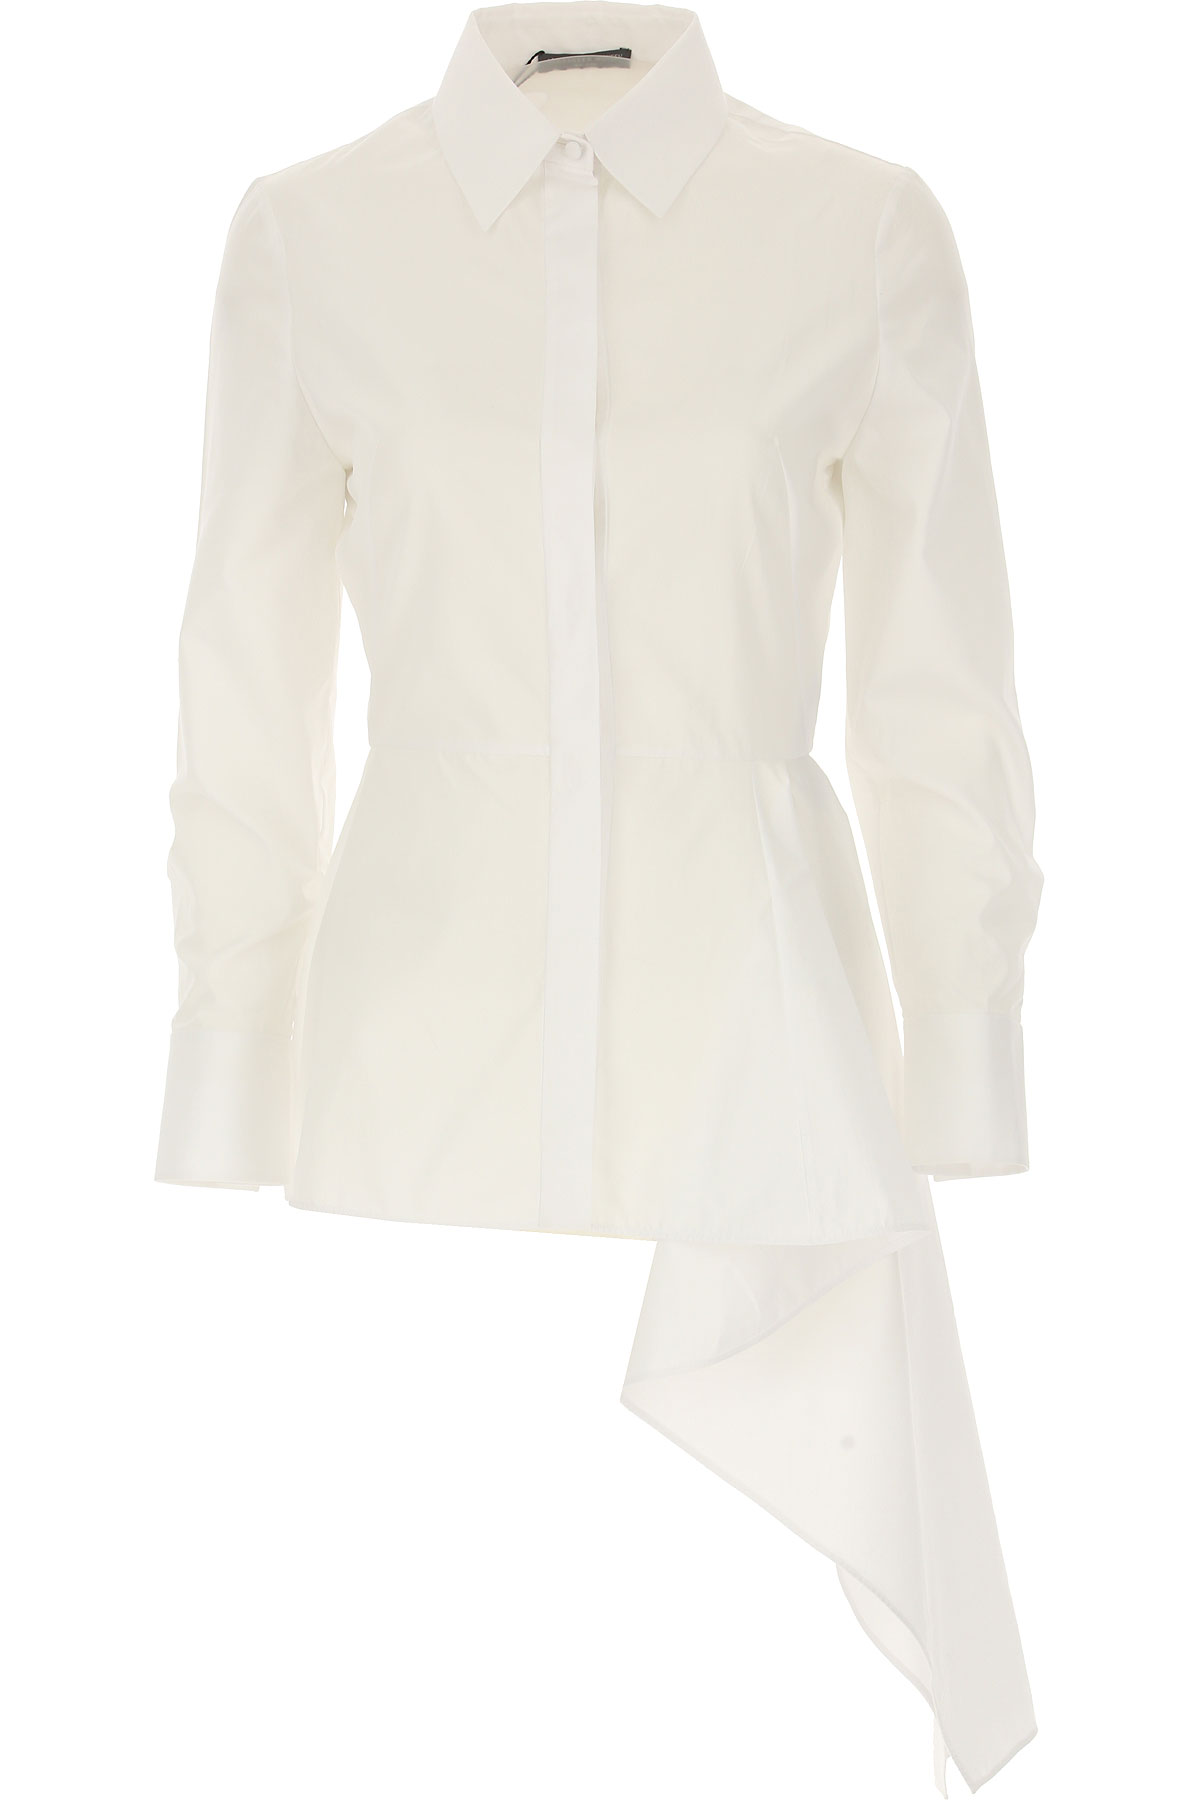 Image of Alexander McQueen Shirt for Women On Sale in Outlet, White, Cotton, 2017, 4 6